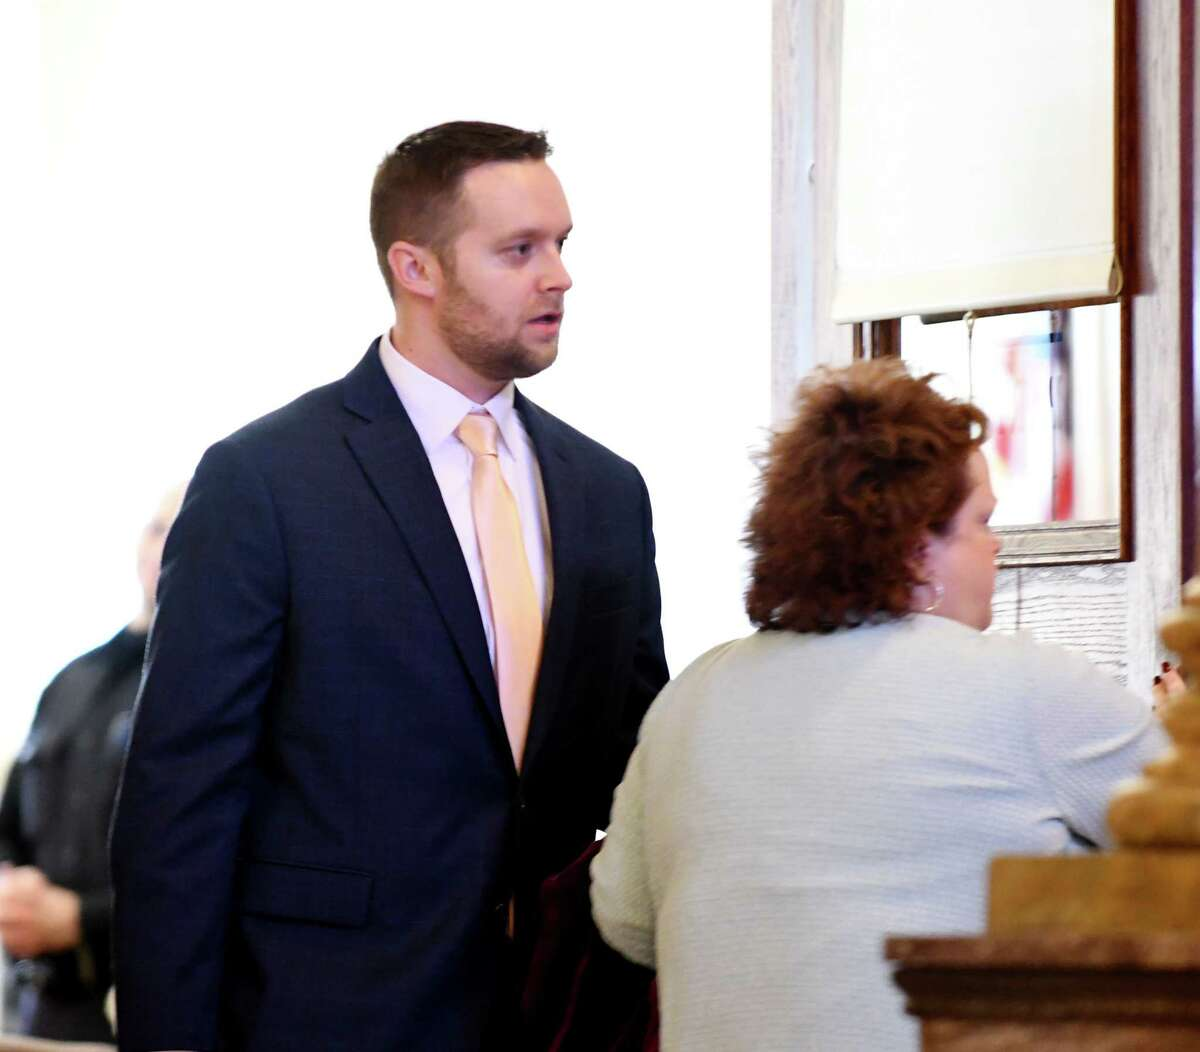 Troy code enforcement officer James E. Lance III leaves Judge Jennifer Sober's courtroom after pleading not guilty to an indictment in connection with the 2015 sale of wooded lot in Lansingburgh to a former city engineer on Tuesday, Feb. 26, 2019, at the Rensselaer County Courthouse in Troy, N.Y. (Will Waldron/Times Union)